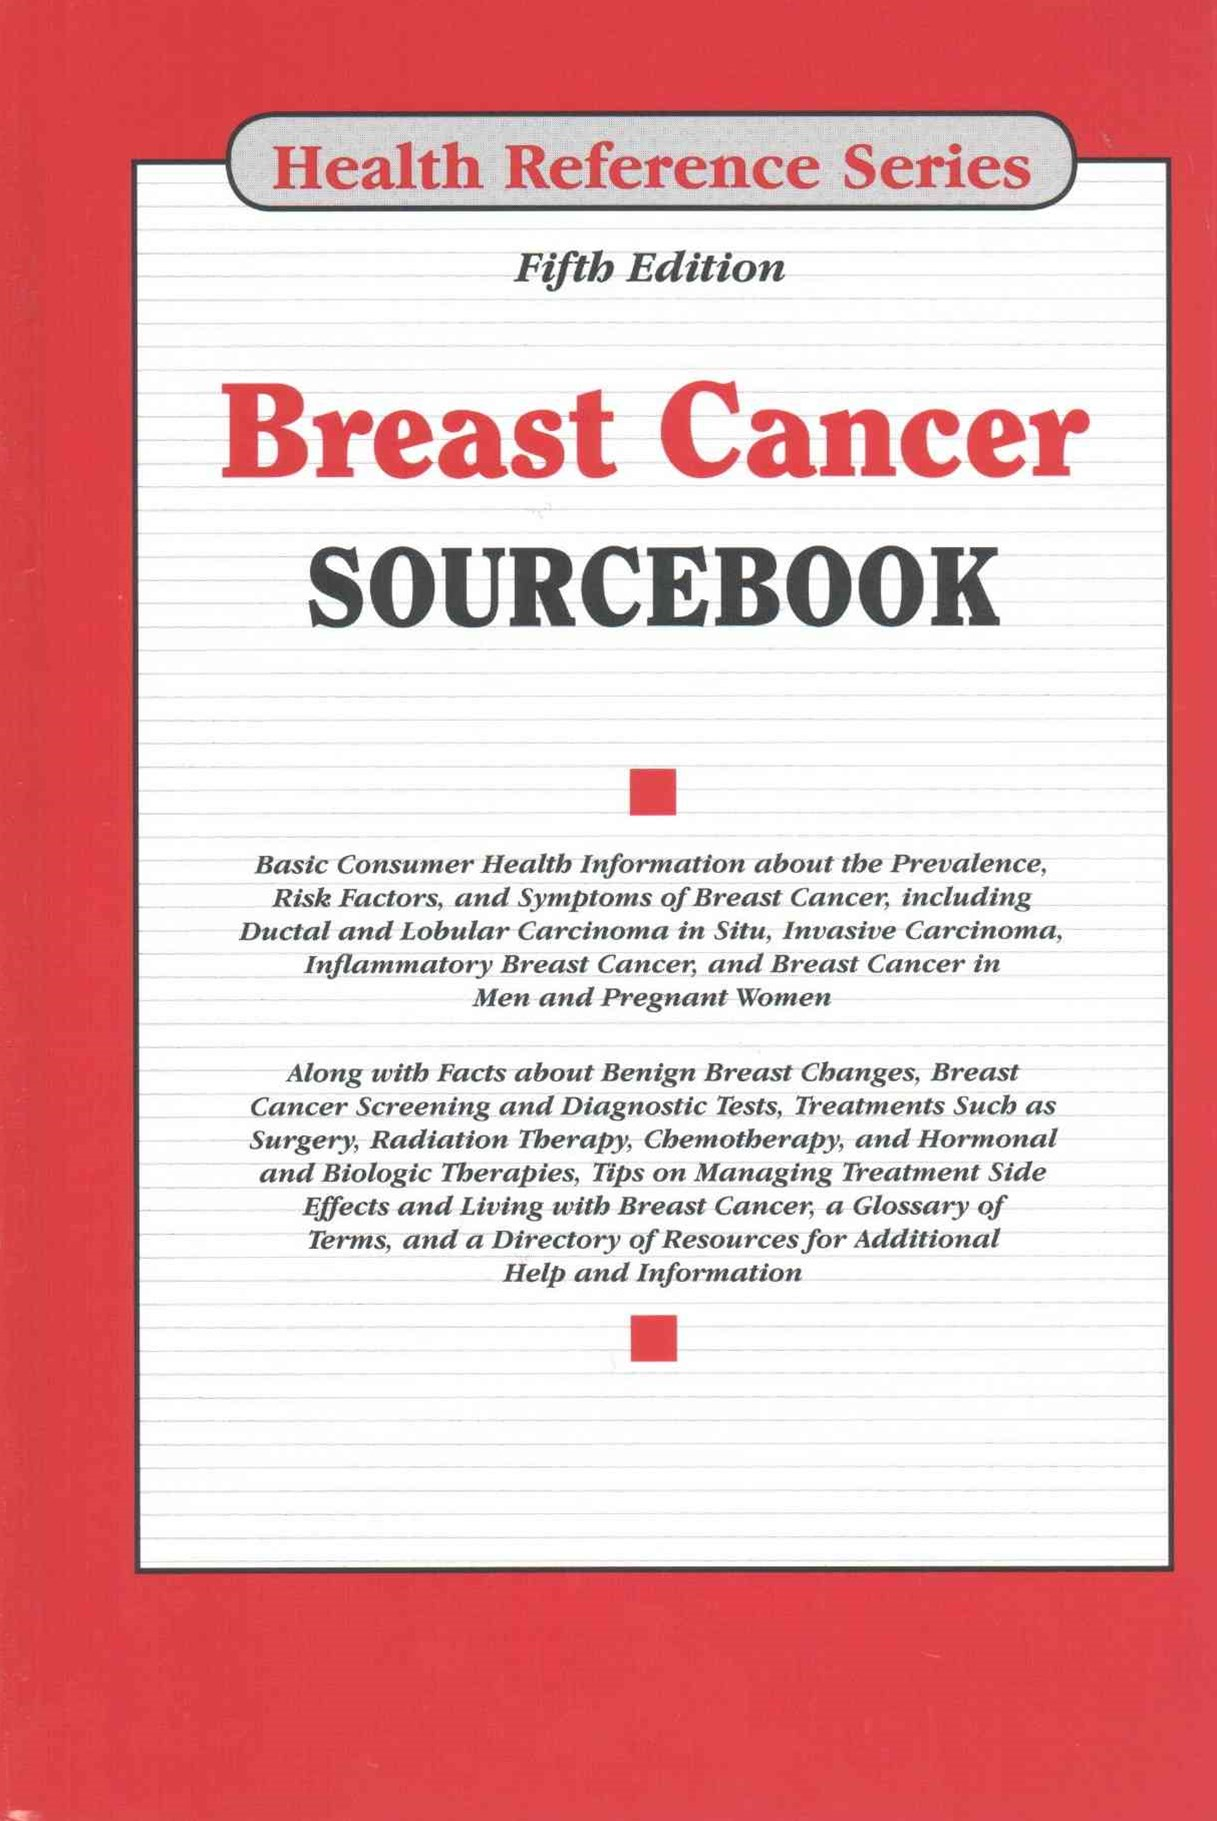 Breast Cancer Sourcebook